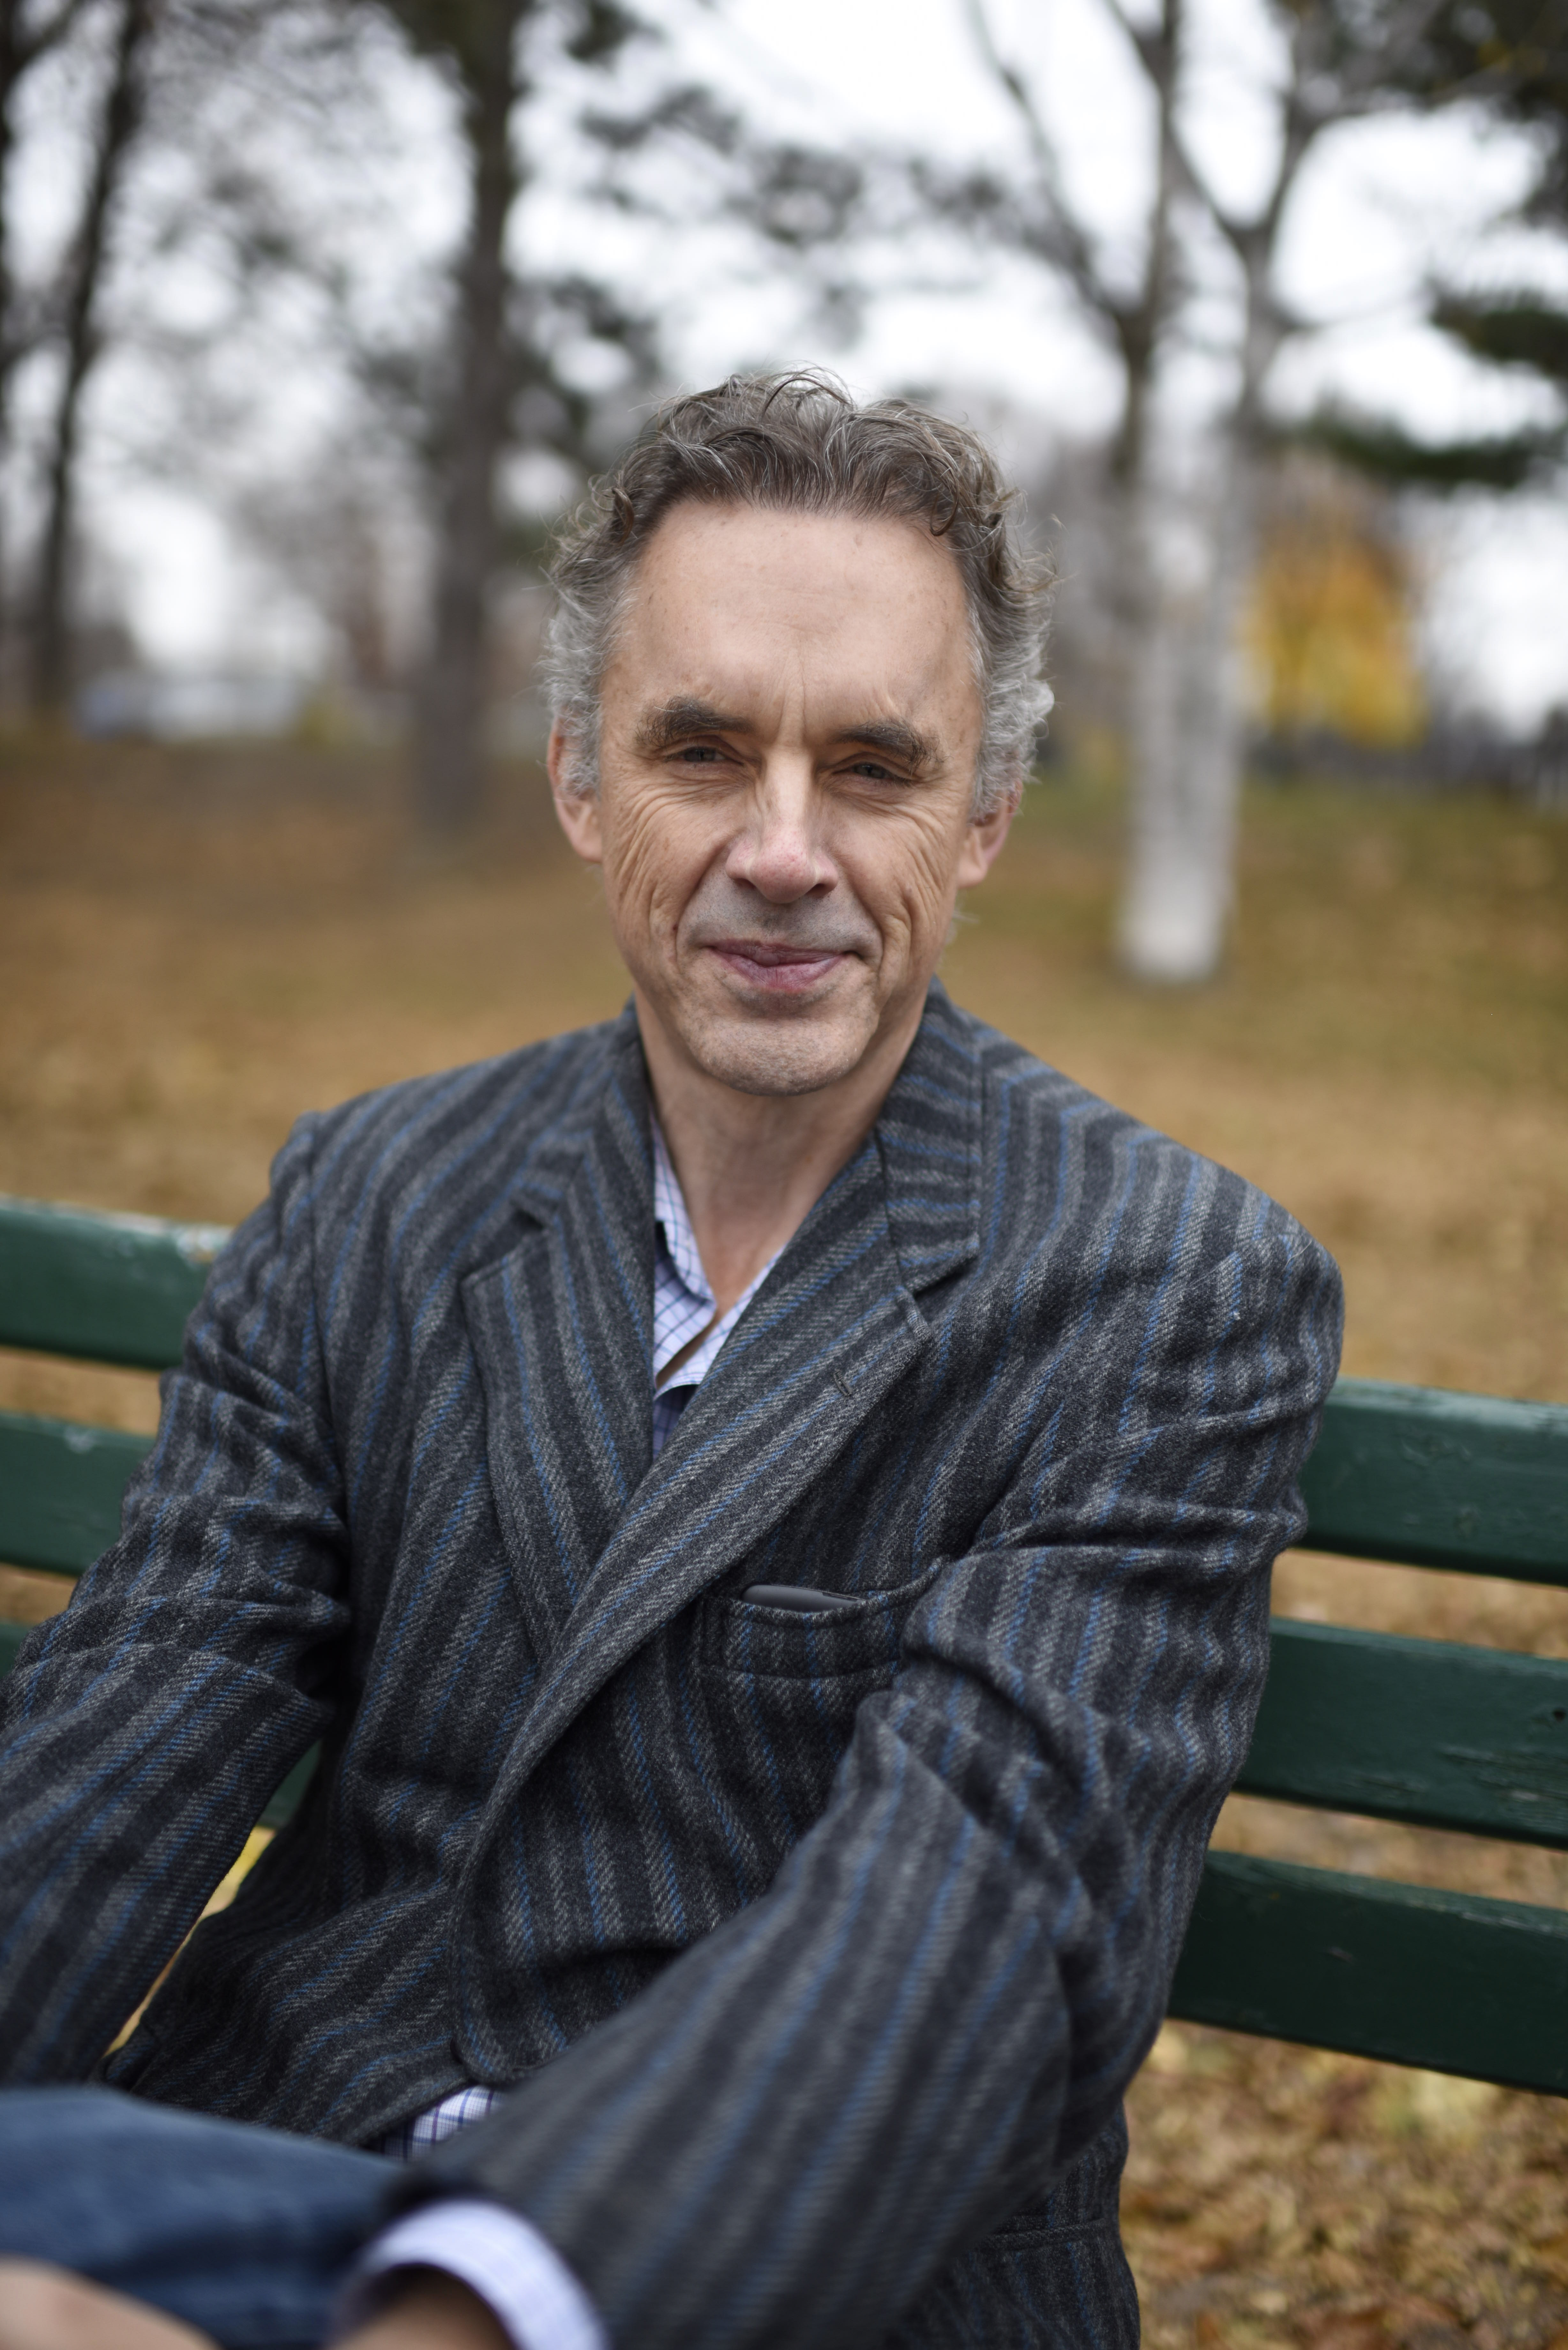 Dr. Jordan B. Peterson poses for a photo near his home in Toronto, Ontario on November 23, 2016. Photo by Marta Iwanek.